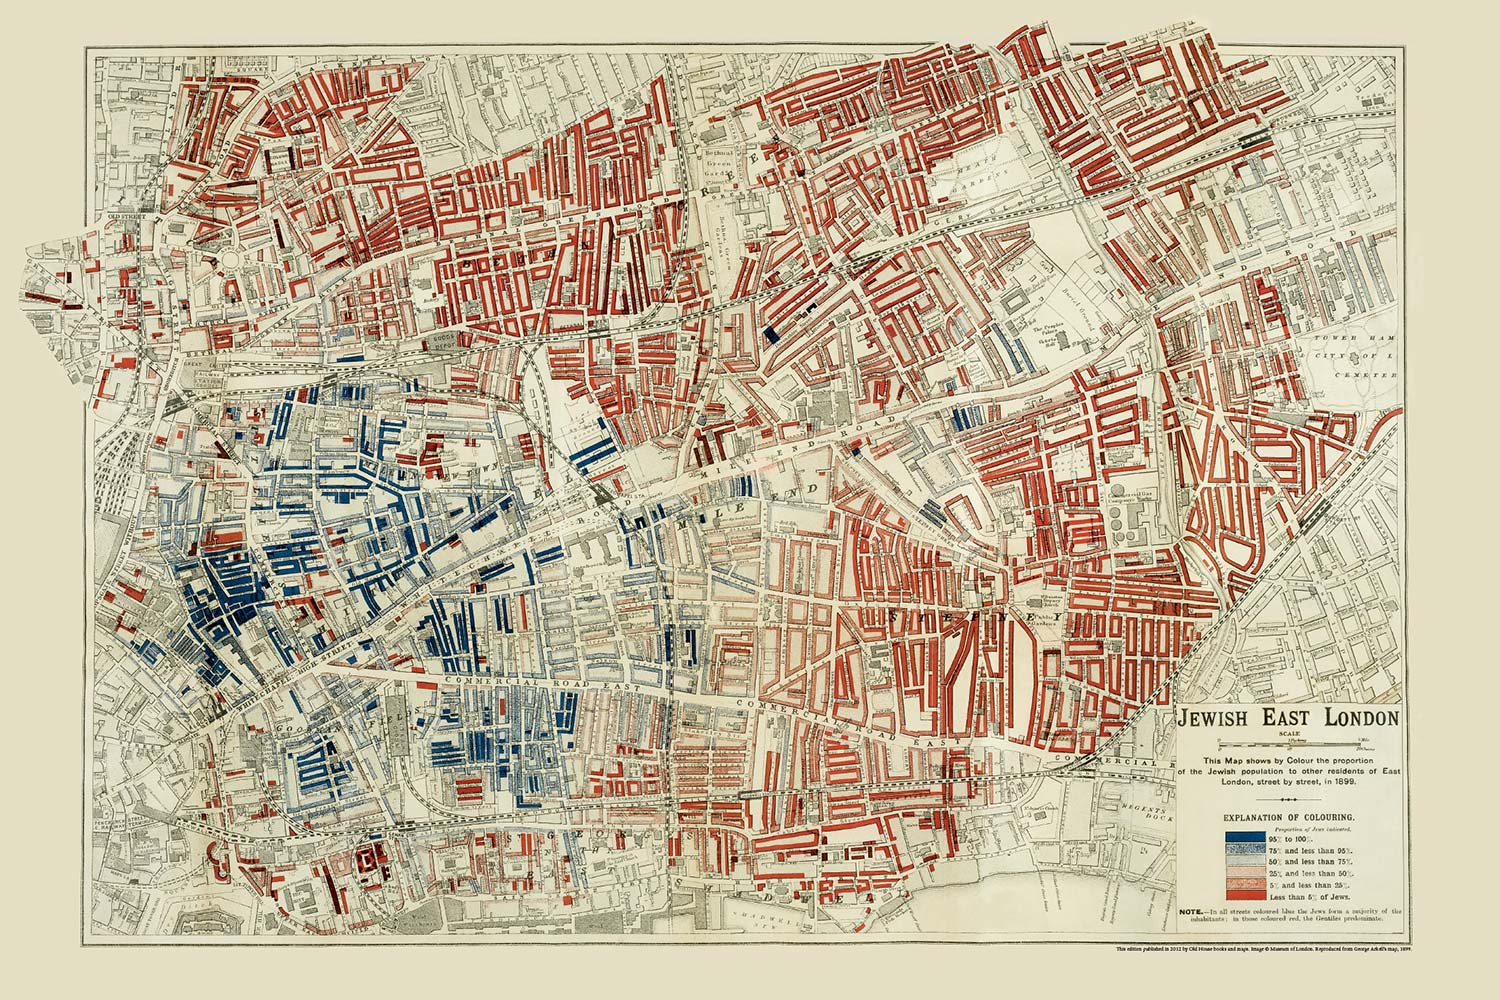 Map of Jewish east London from 1899